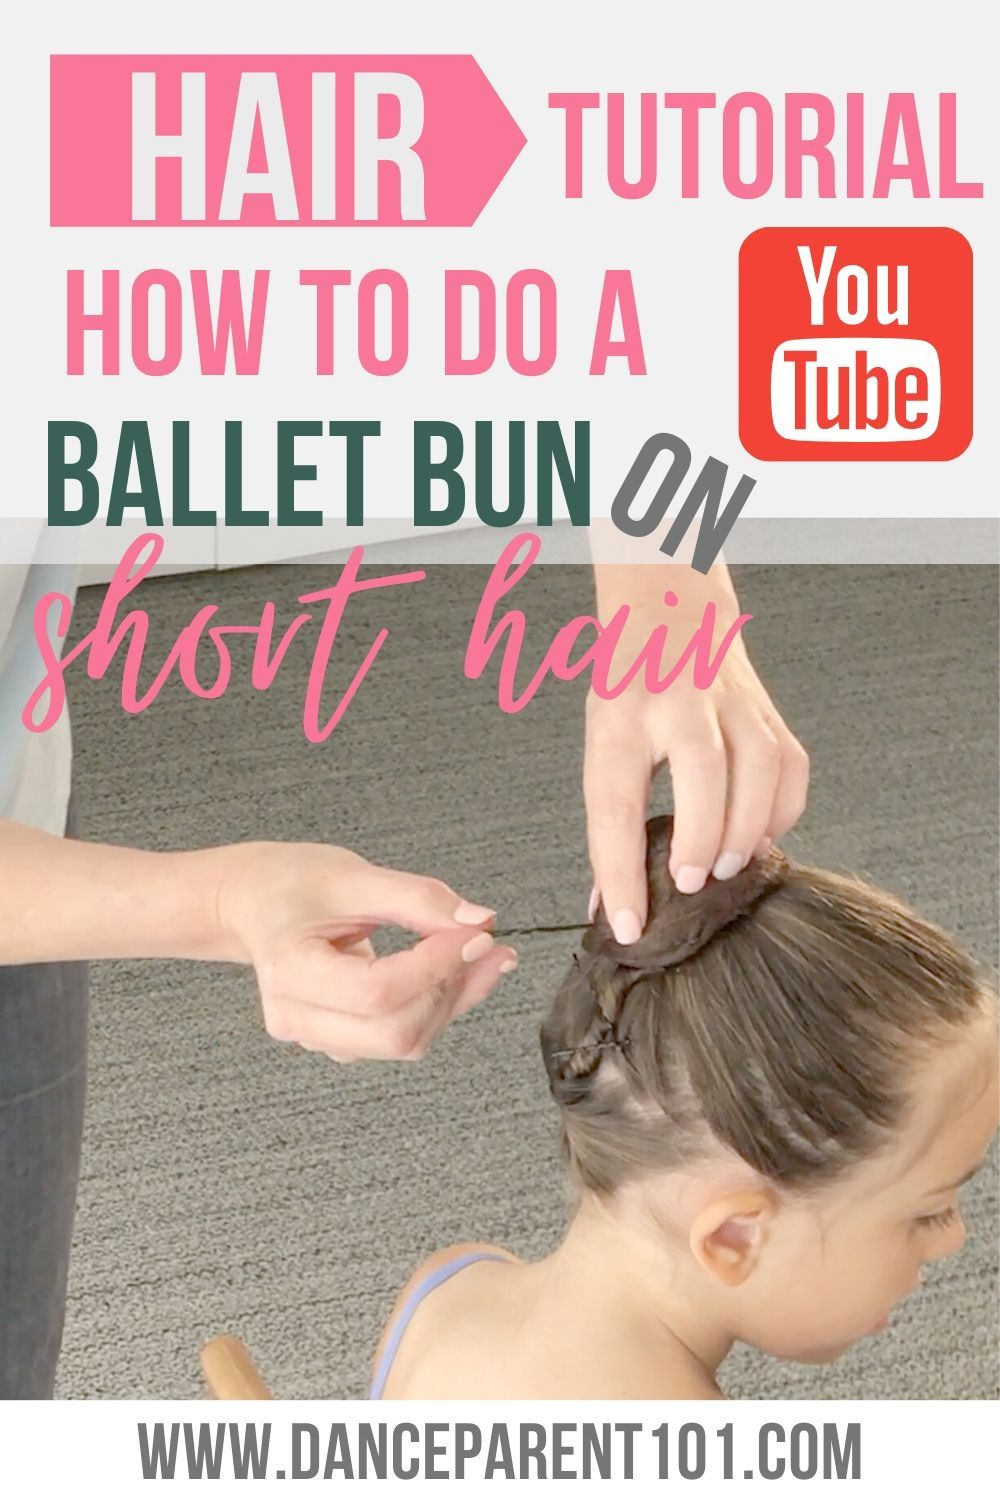 Ballet Bun Tutorial For Short Hair Step By Step Instructions And Video Tutorial In 2021 Ballet Bun Short Hair For Kids Ballet Bun Tutorial